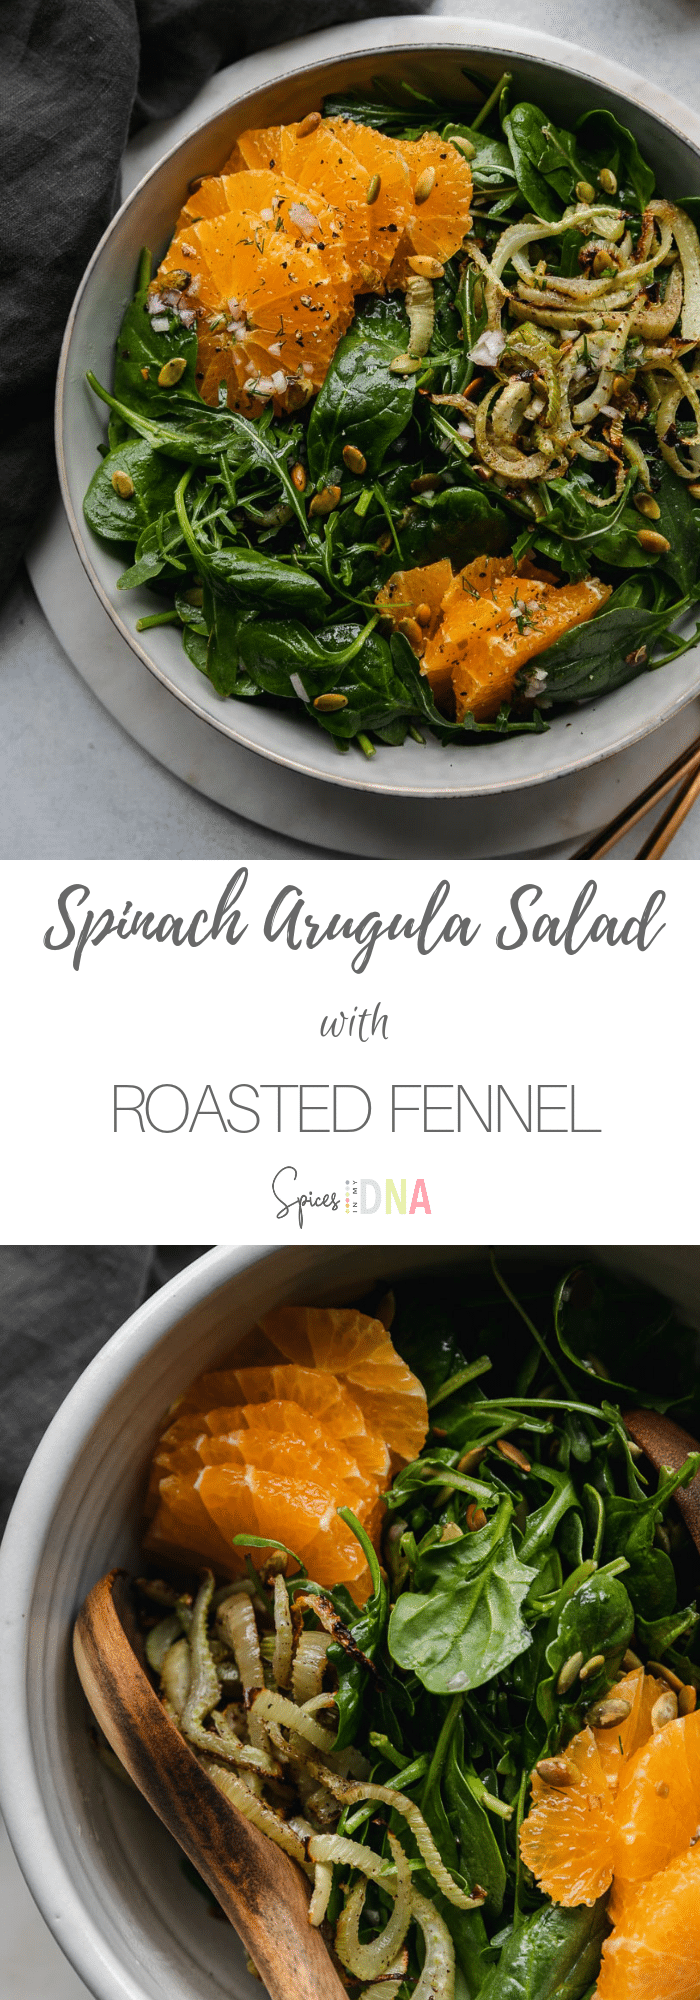 This Spinach Arugula Salad with Roasted Fennel, Tangelos, Pumpkin Seeds, and a Citrus Vinaigrette is the ultimate winter salad. It's filled with the best winter citrus flavors, caramelized roasted fennel, toasted pumpkin seeds, and the most delicious citrus vinaigrette. I crave this combination daily in the winter, and sometimes I add grilled chicken or salmon to make it a heartier meal! #salad #wintercitrus #healthyrecipe #tangelo